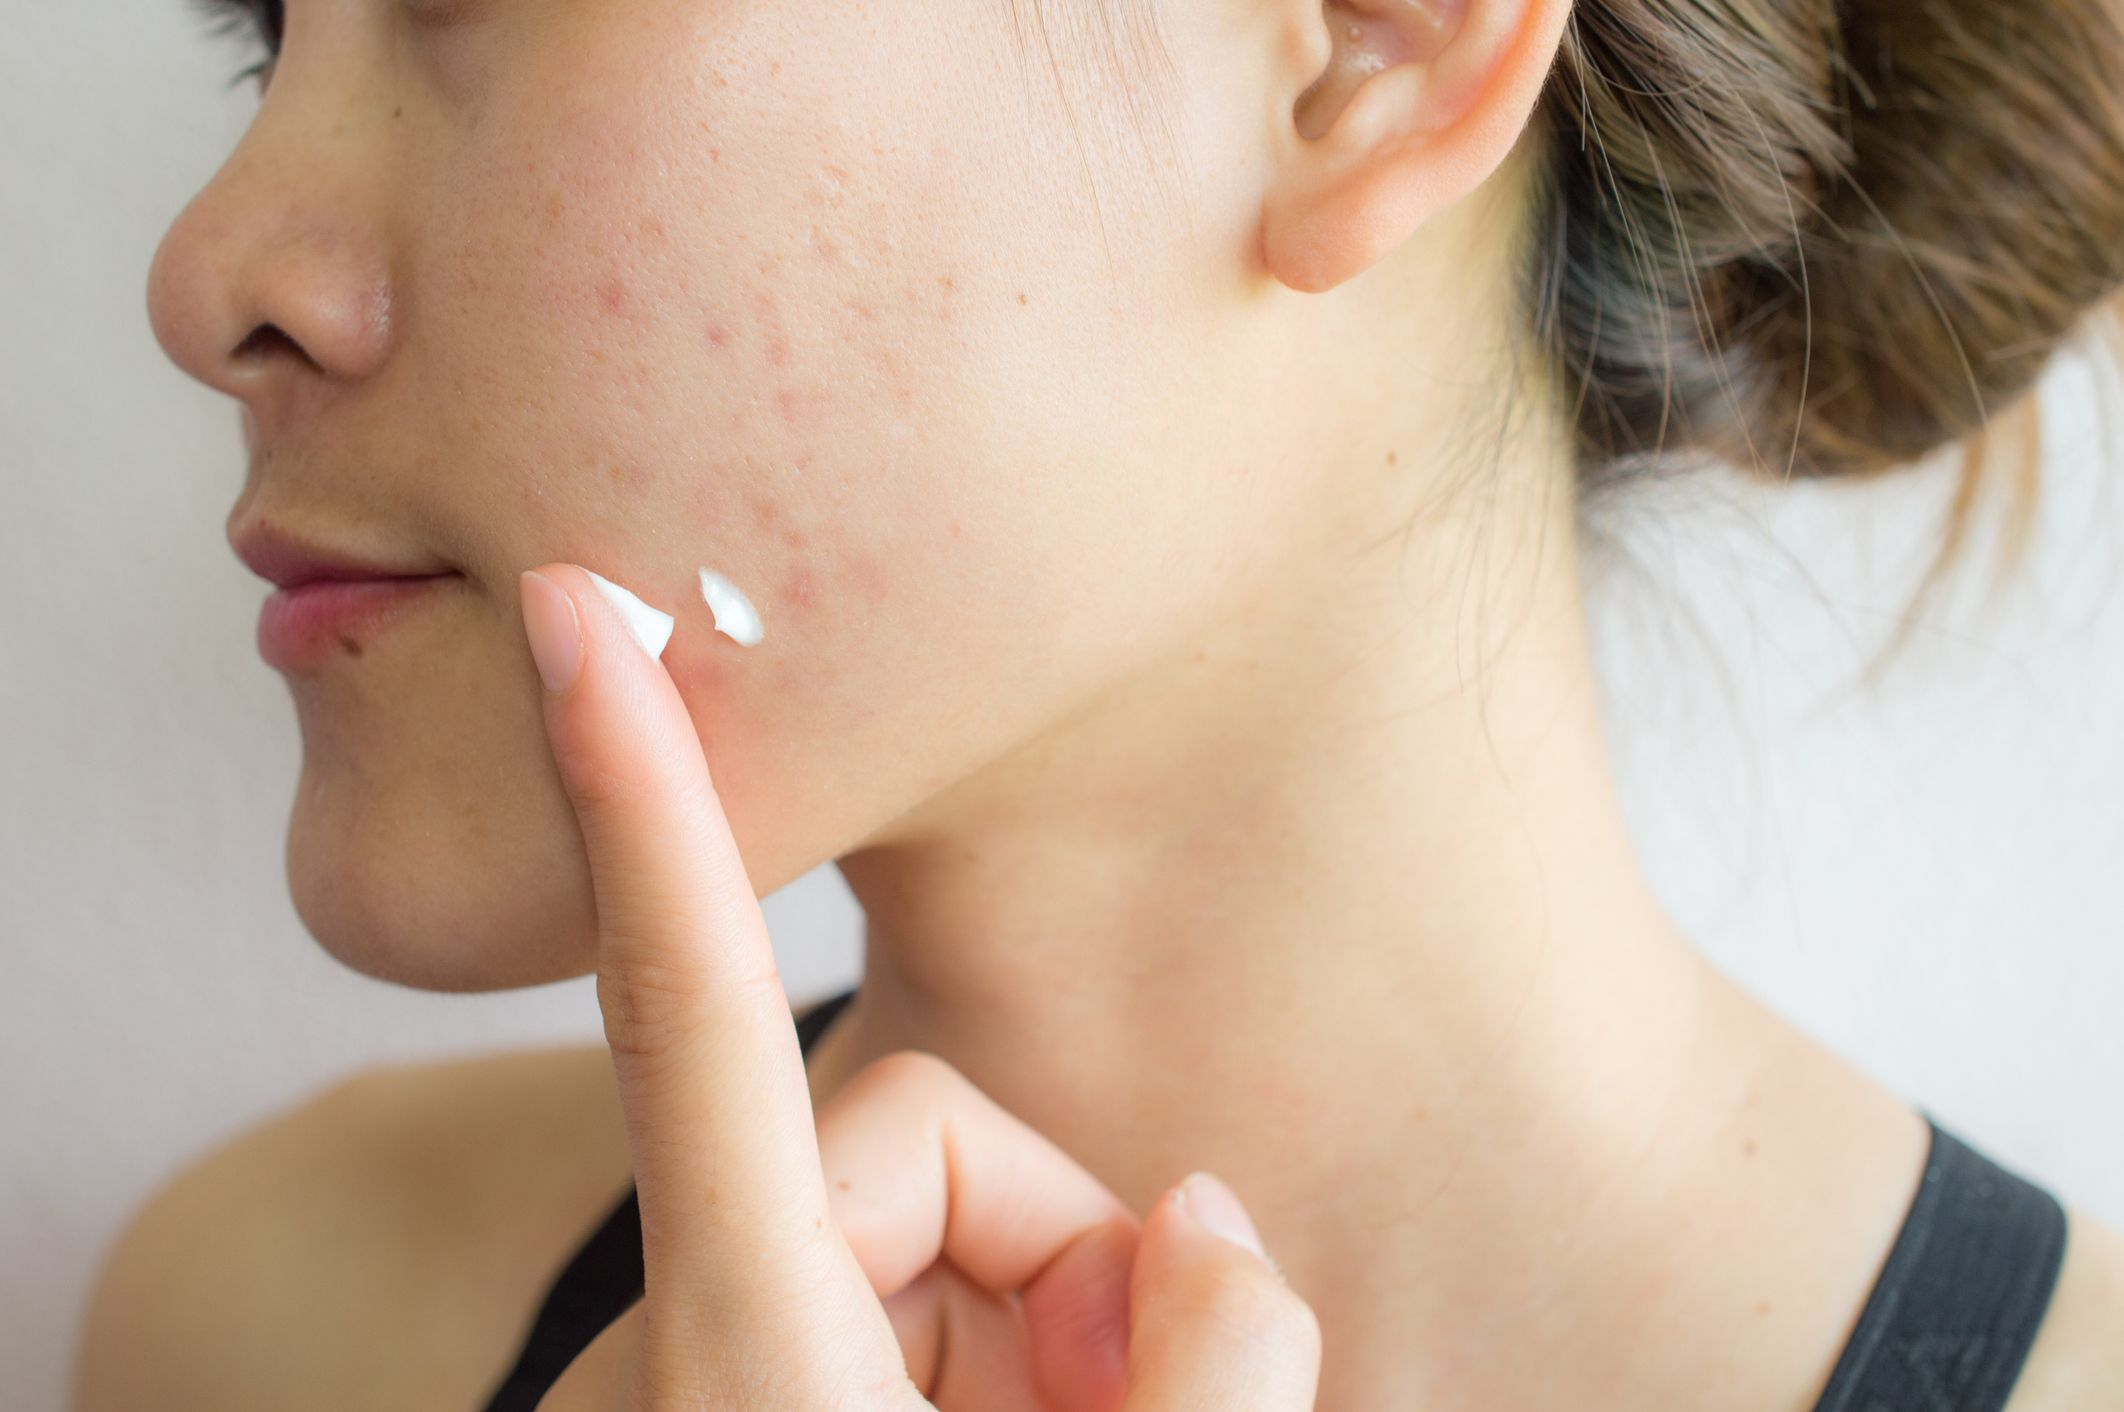 10 Best Moisturizers for Oily, Acne-Prone Skin, According to Dermatologists